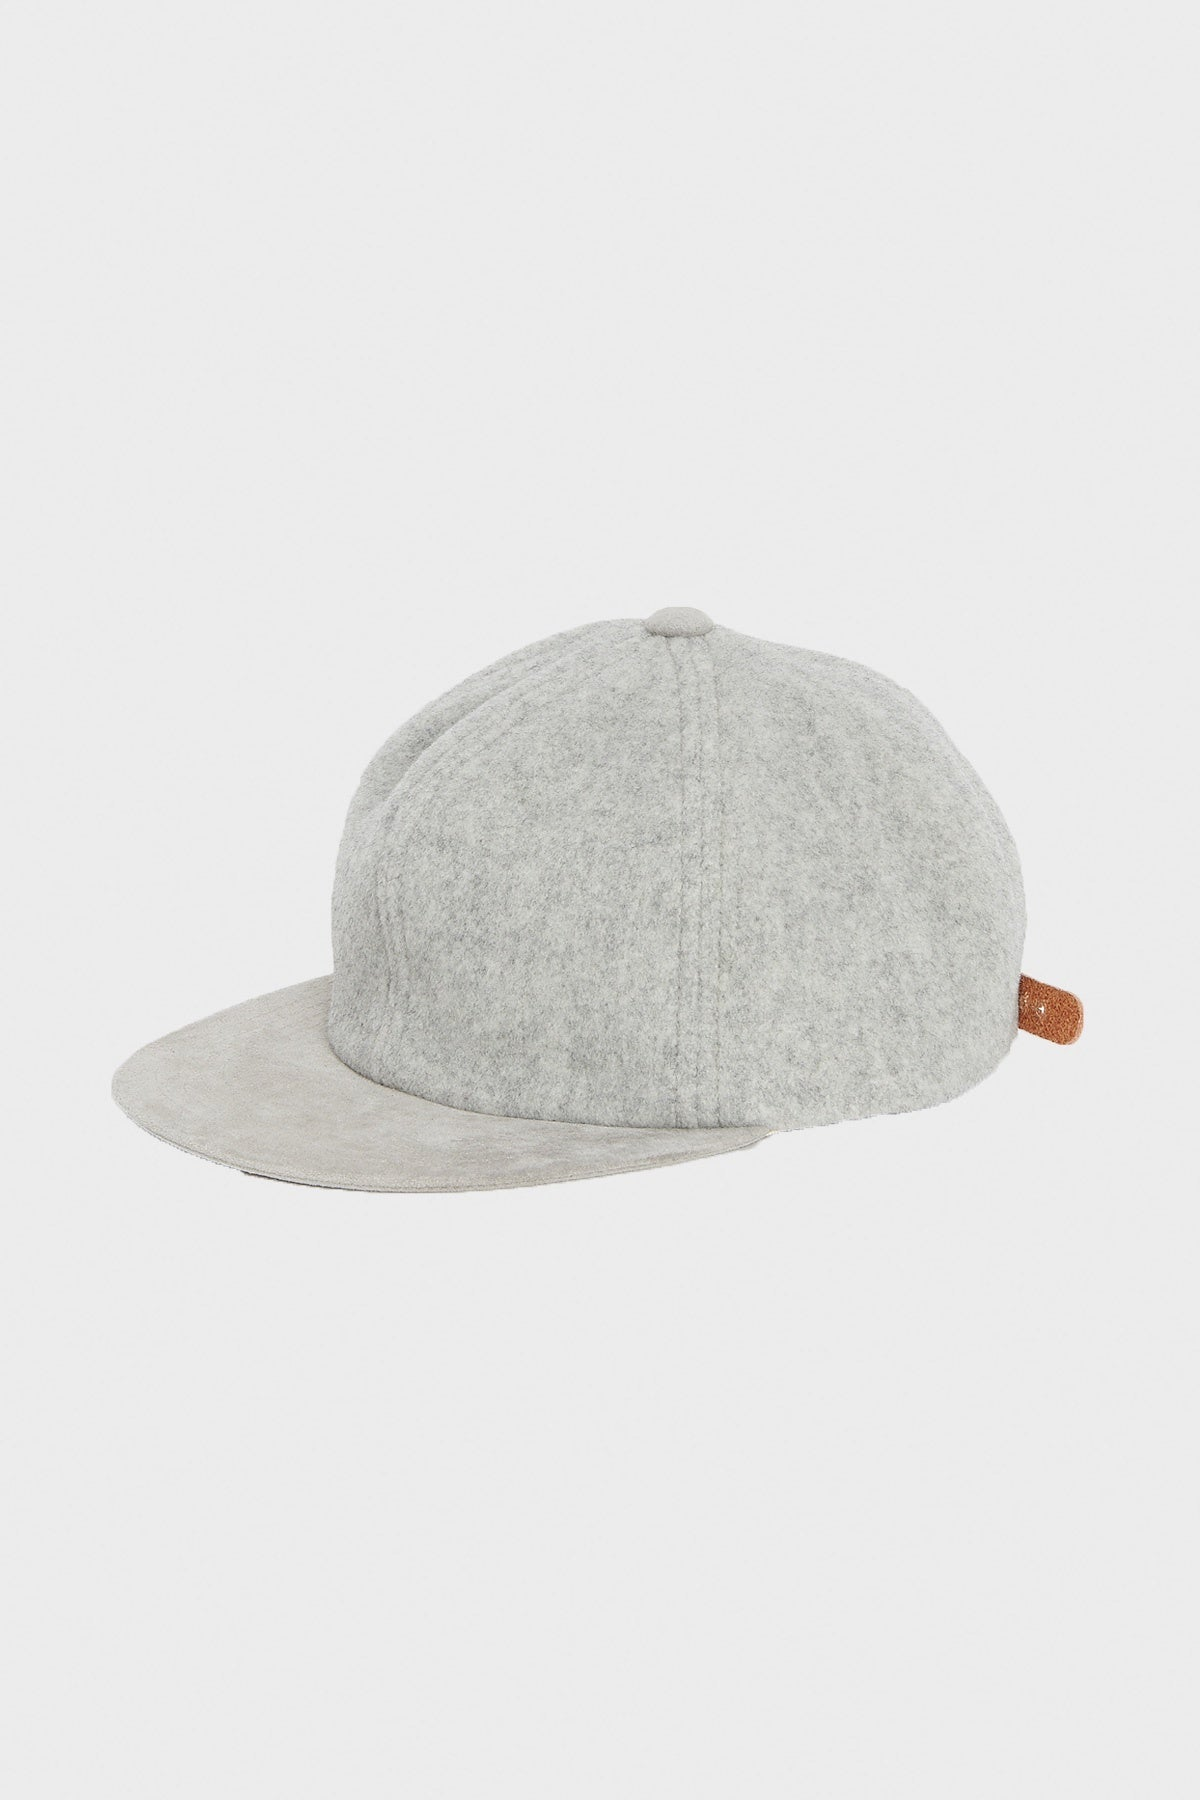 hender scheme 2 Tone Wool Cap - Light Grey